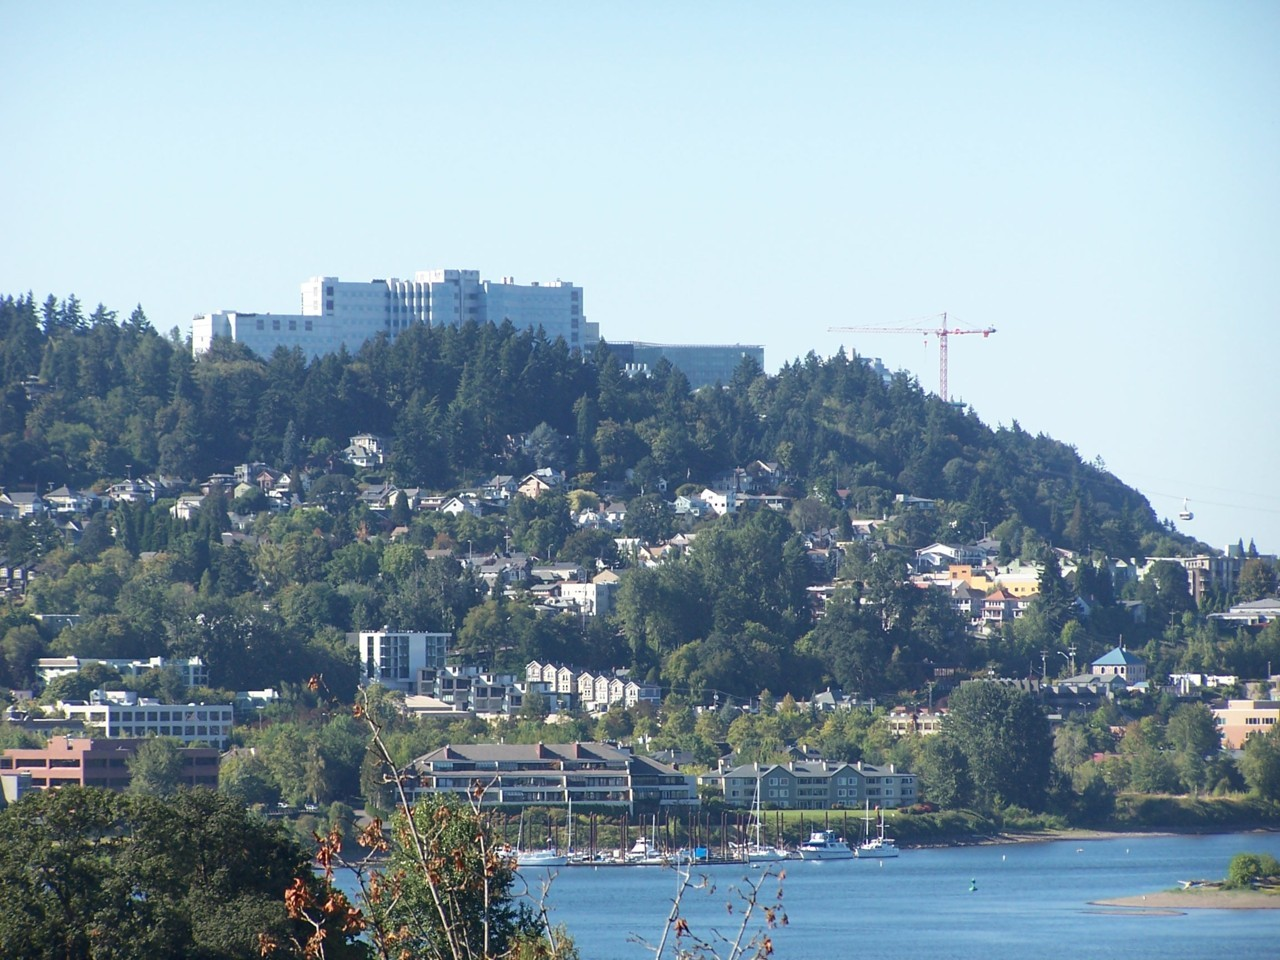 John's Landing and Marquam Hill, capped by the VA Hospital and OHSU. The Portland Aerial Tram is visible at the far right.